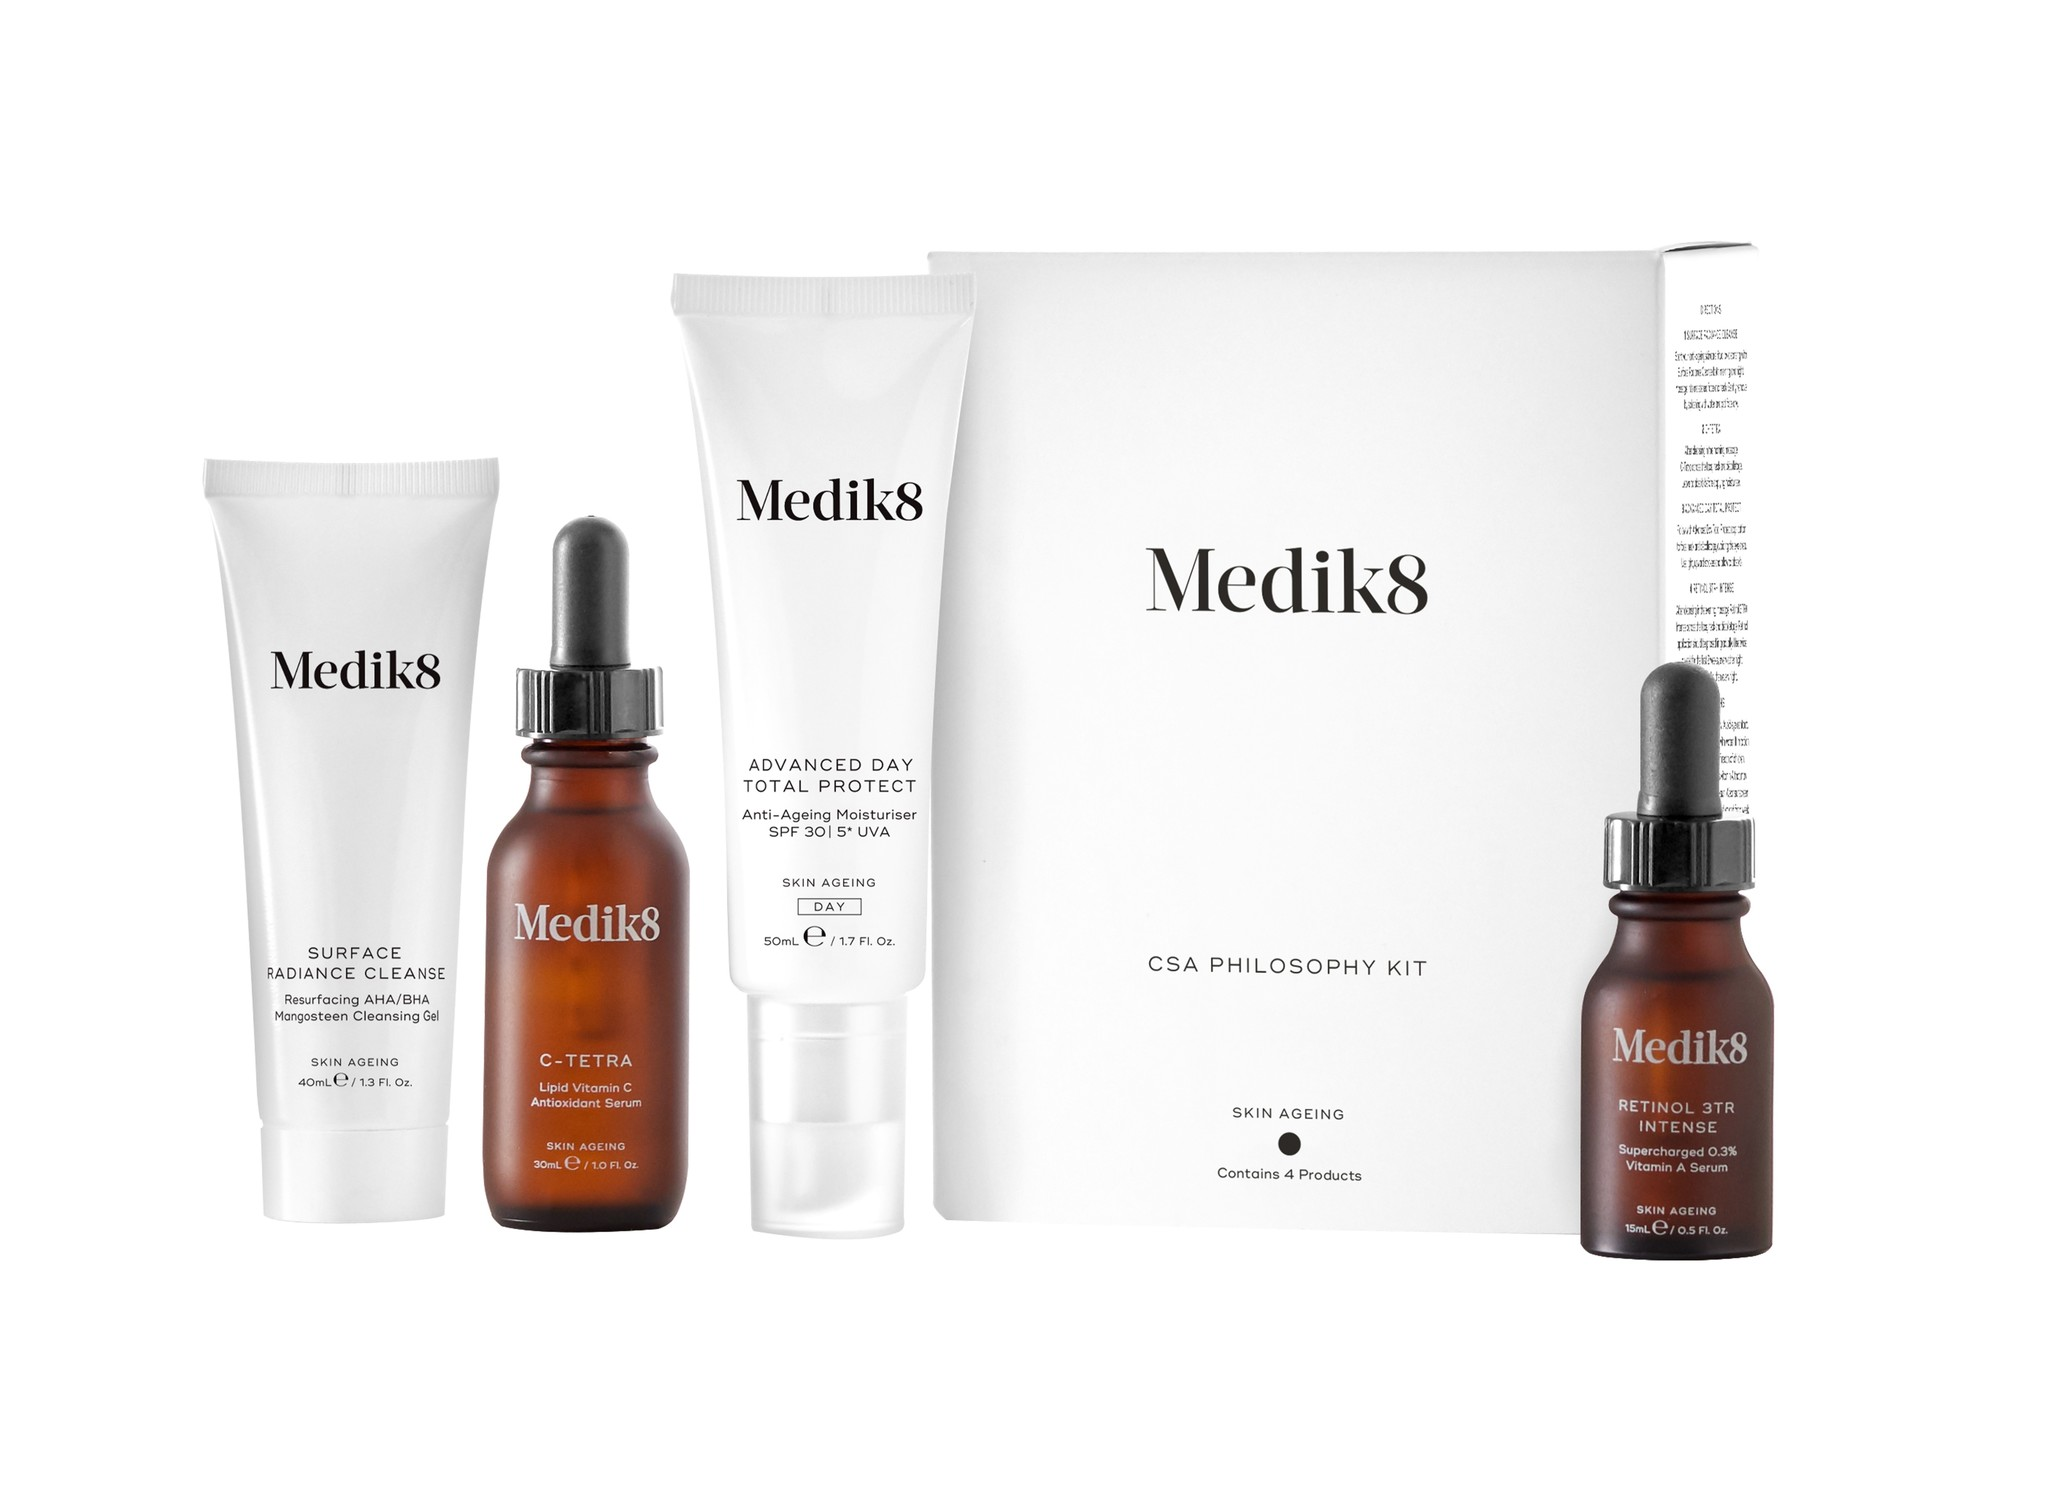 Medik8 Contains 4 products | Surface Radiance Cleanse, C-Tetra, Advanced Day Total Protect, Retinol 3TR Intense